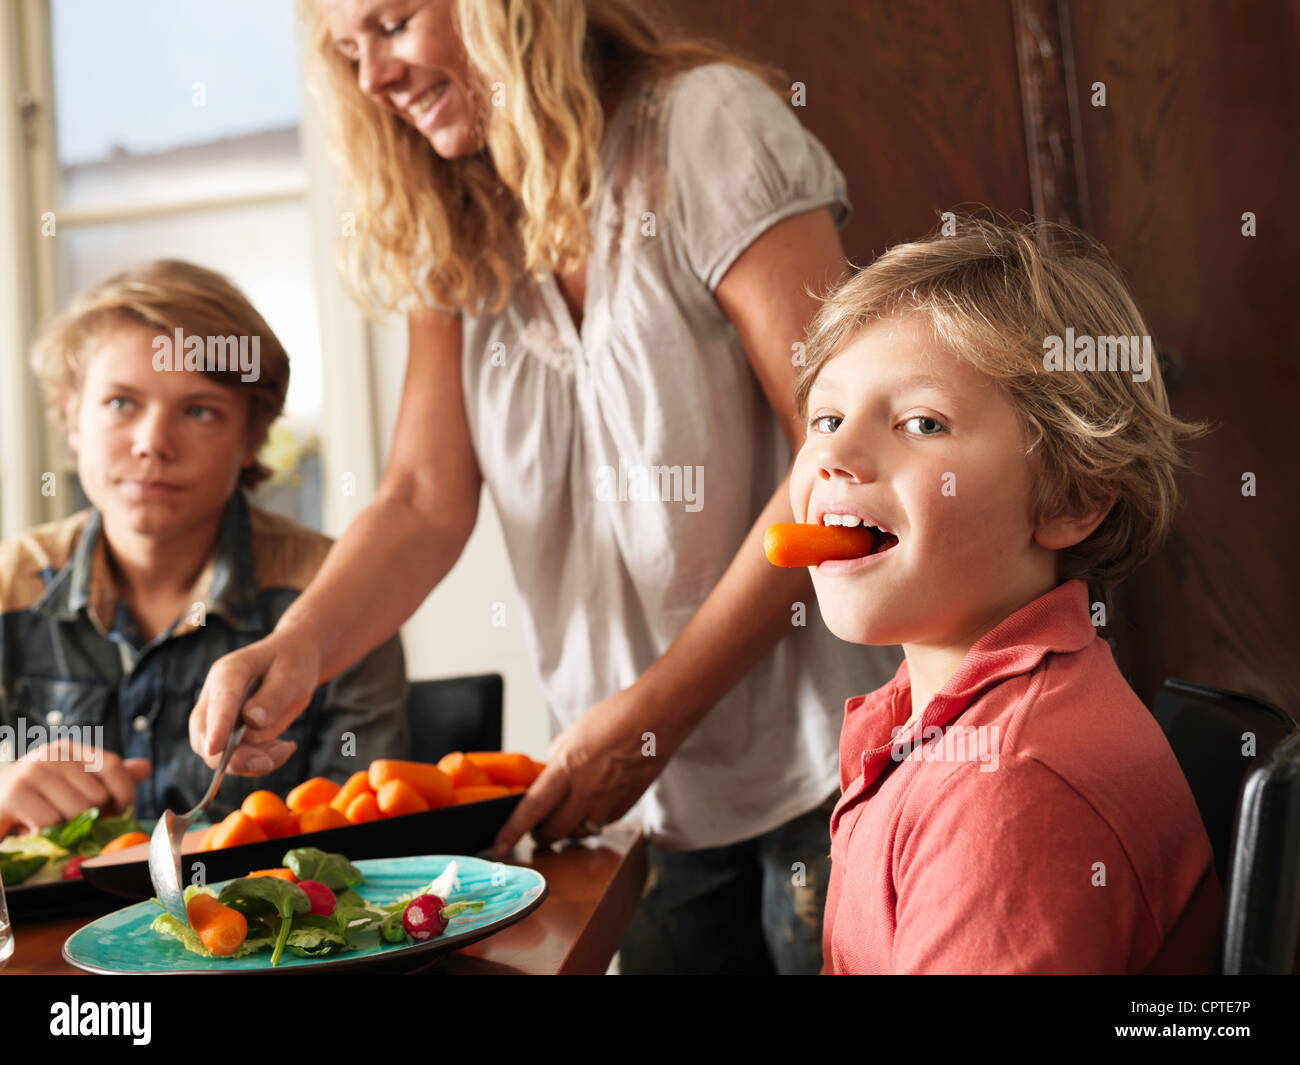 Boy holding carrot in his mouth as mother serves healthy meal - Stock Image